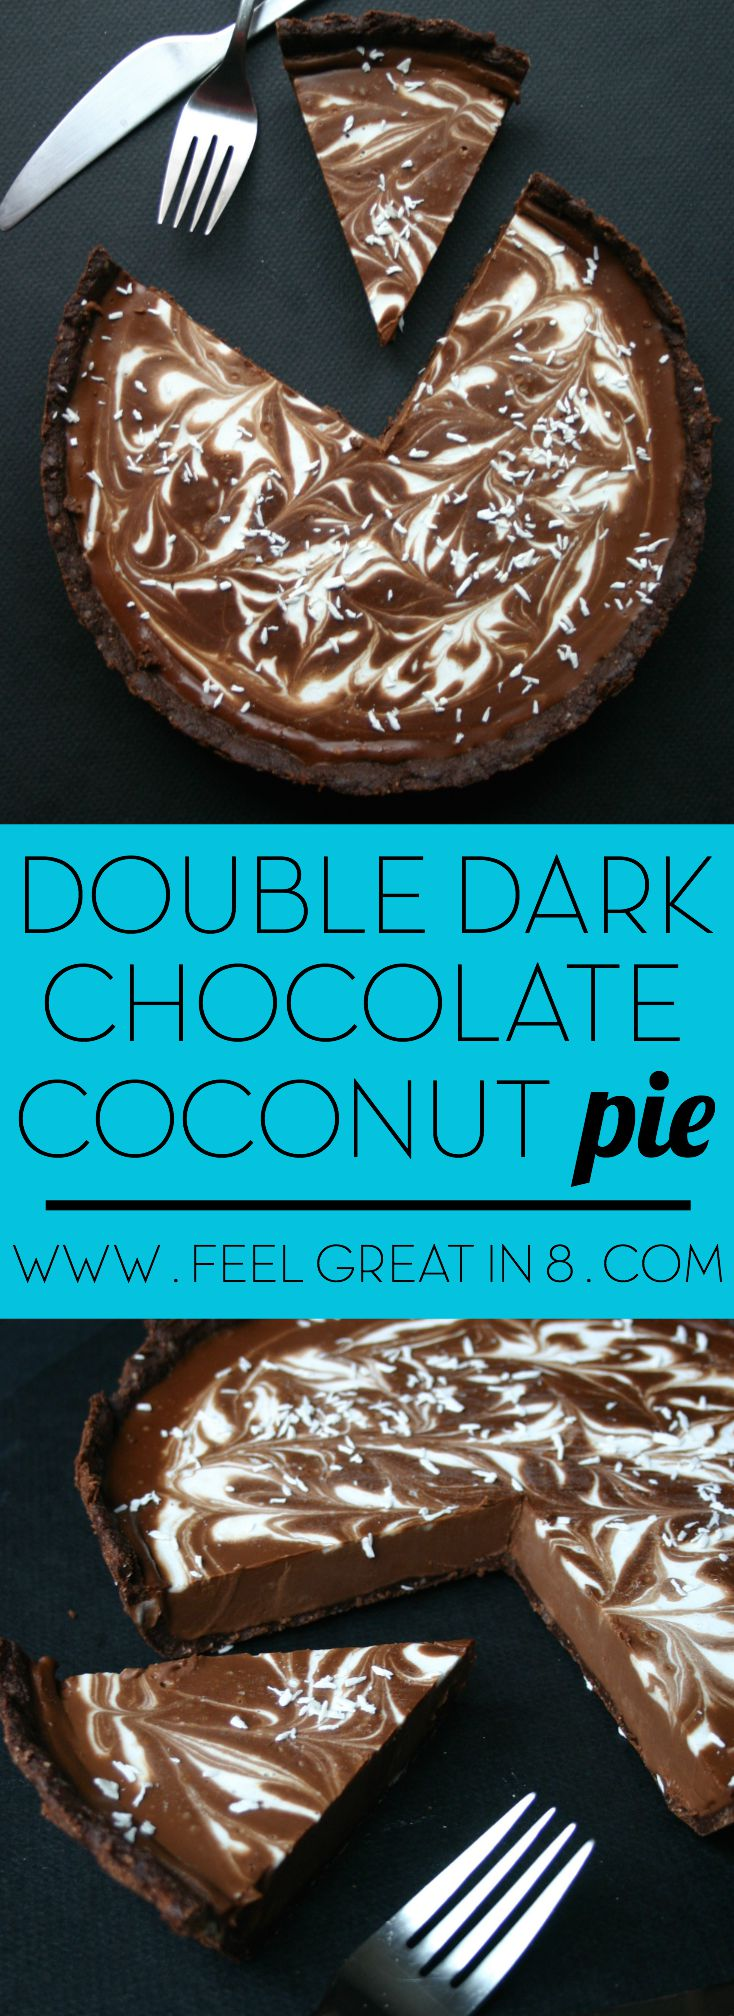 You'd never guess this creamy, chocolaty, delicious Double Dark Chocolate Coconut Pie is no bake, gluten free, refined sugar free, and vegan! | Feel Great in 8